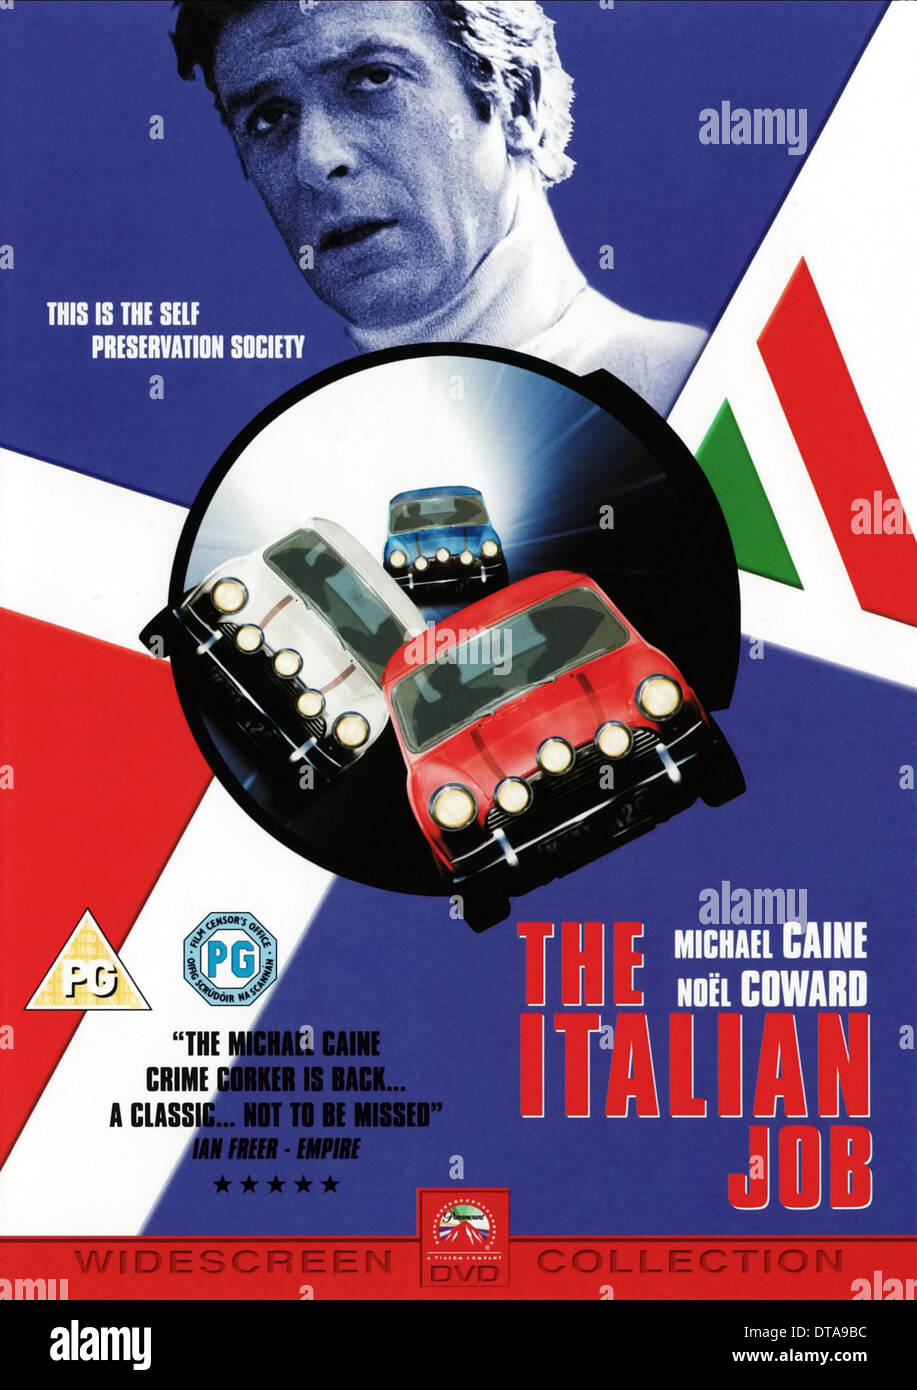 The italian job (1969) blu-ray cover dvd covers & labels by.